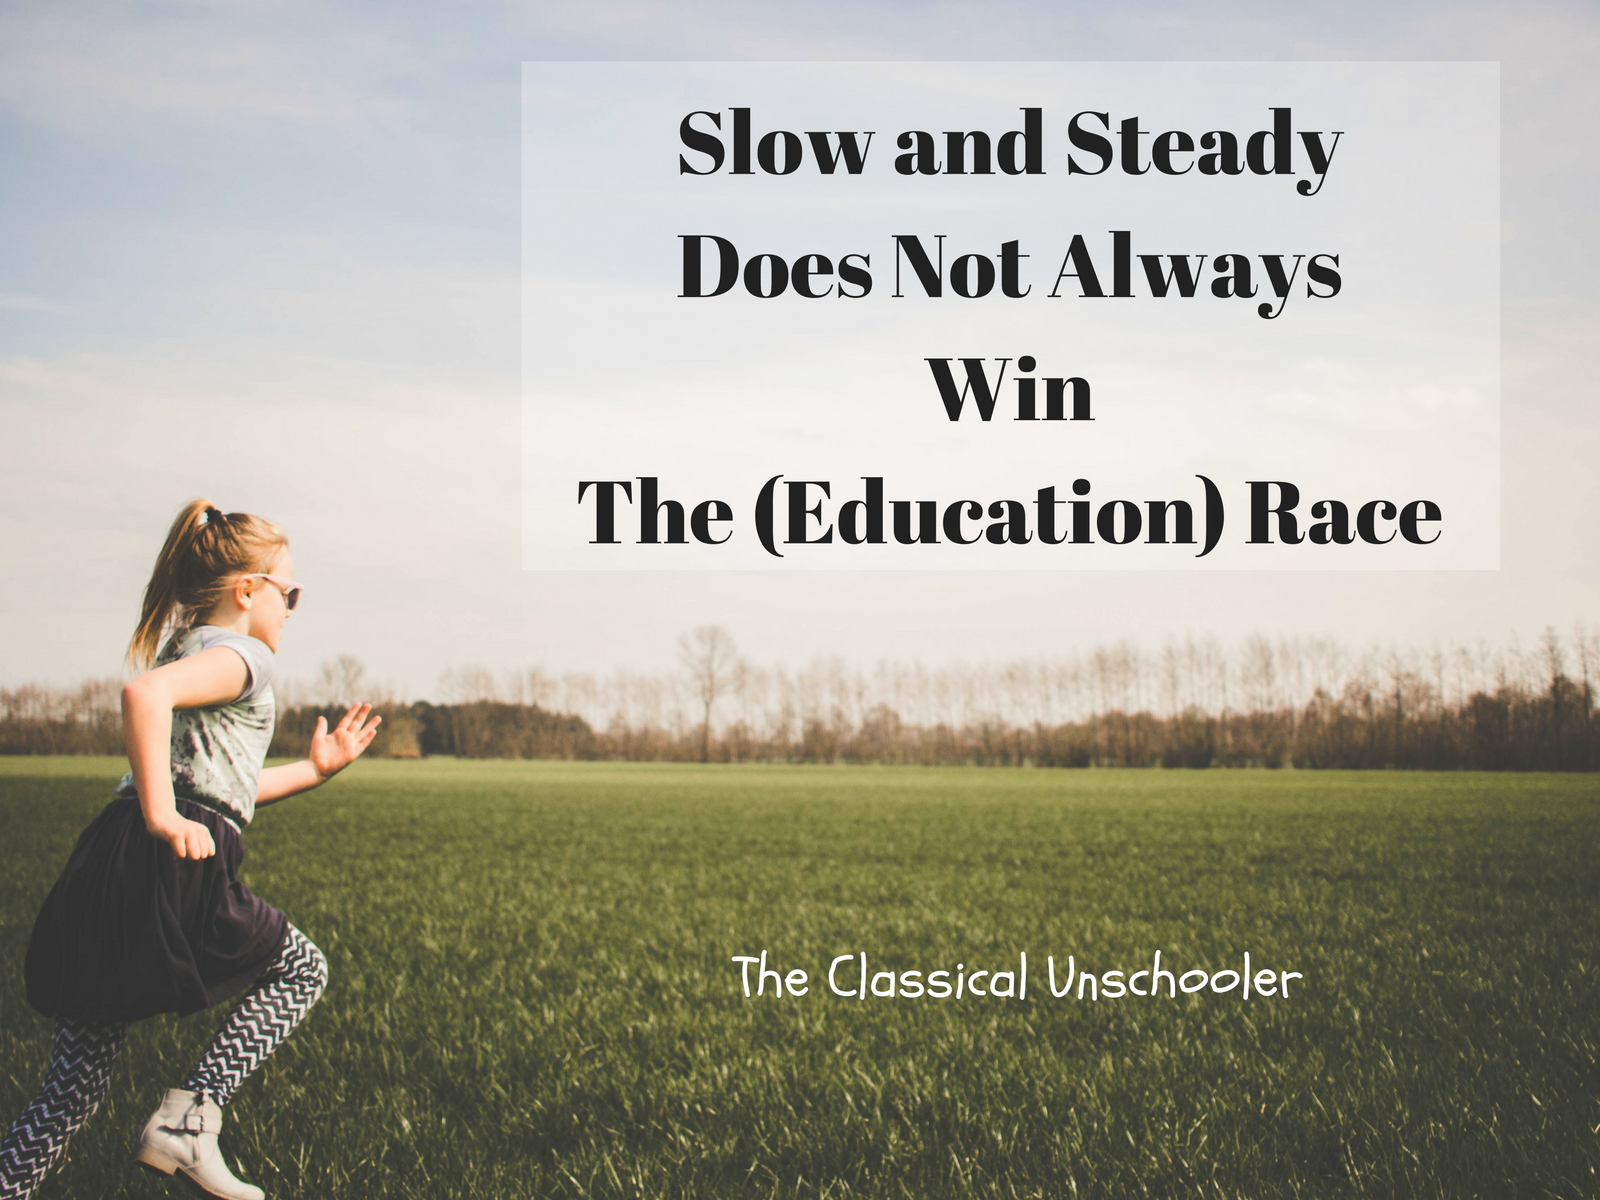 slow and steady wins the race essay Legal procedures for donating organs essay steady and essay slow wins the race - insurgencies: essays in planning theory (rtpi library series) - by john friedmann - routledge.